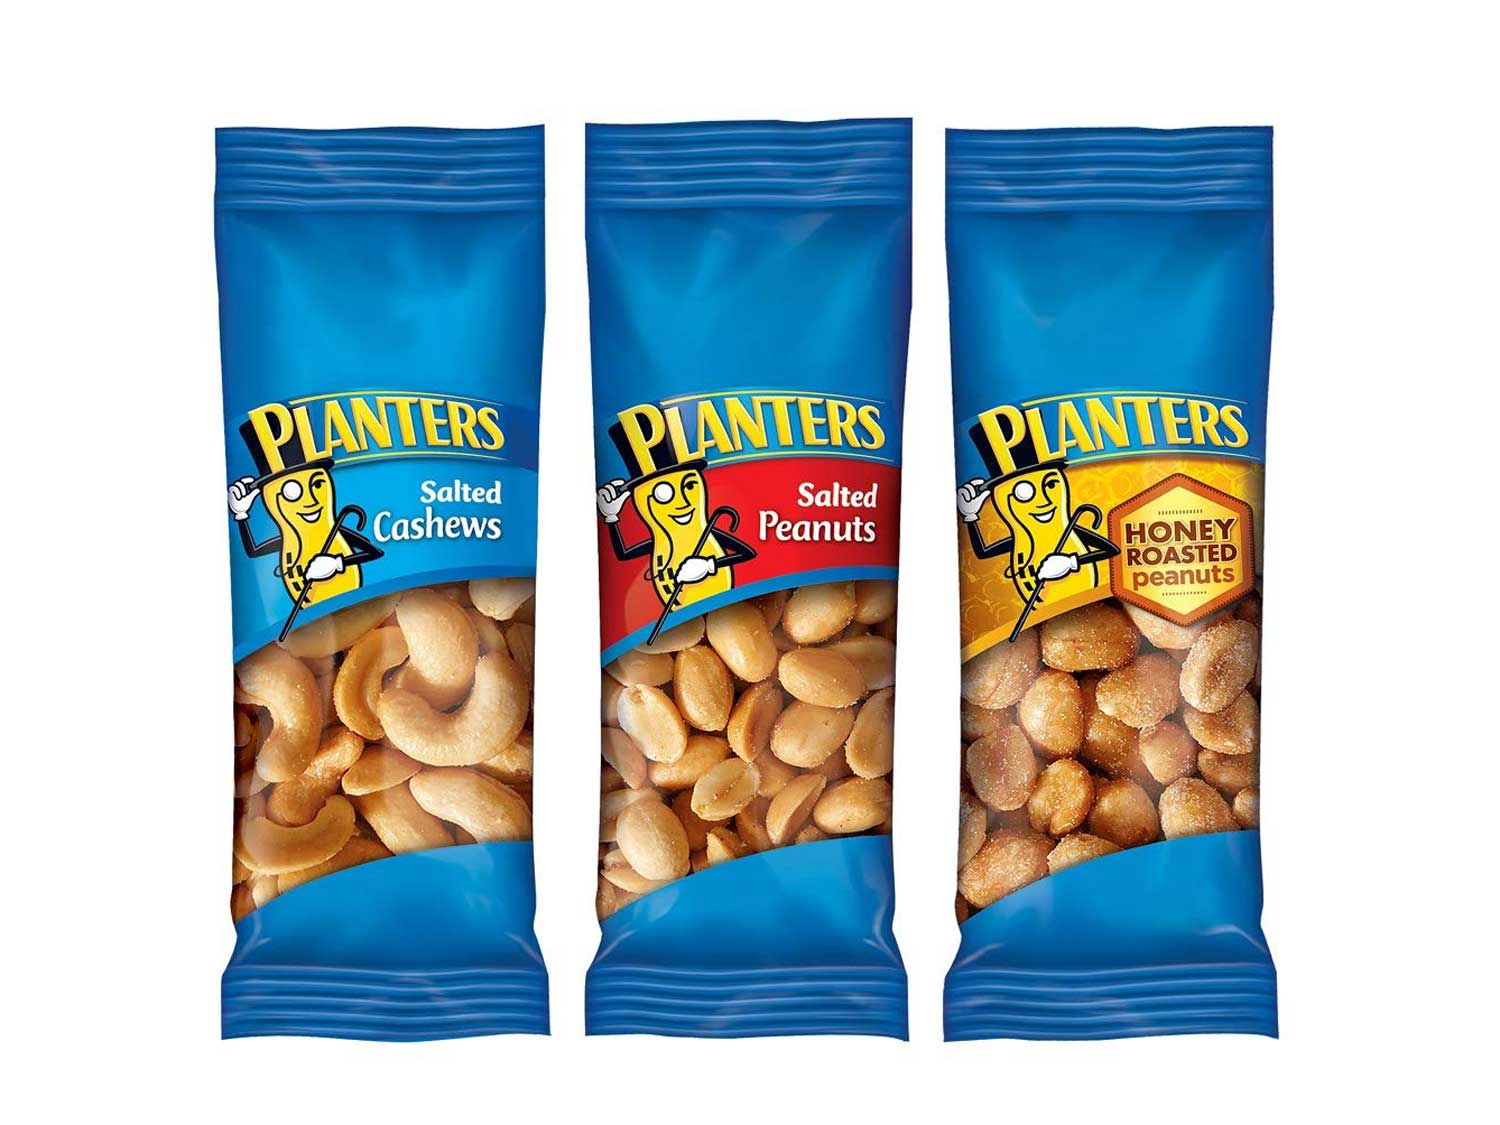 PLANTERS Variety Packs (Salted Cashews, Salted Peanuts & Honey Roasted Peanuts), 36 Packs   Individual Bags of On-the-Go Nut Snacks   No Cholesterol or Trans Fats   Source of Fiber and Healthy Fats